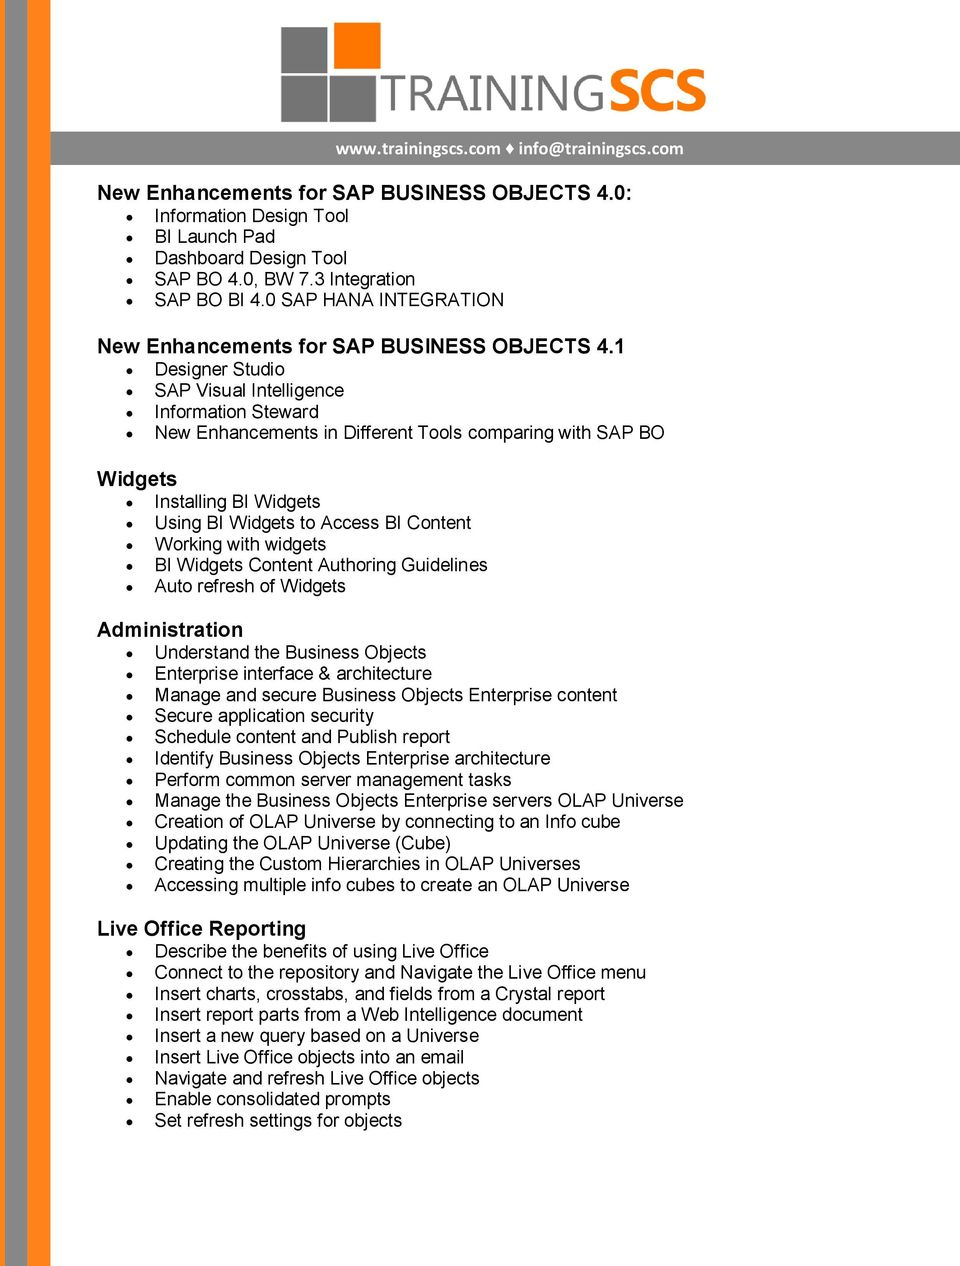 1 Designer Studio SAP Visual Intelligence Information Steward New Enhancements in Different Tools comparing with SAP BO Widgets Installing BI Widgets Using BI Widgets to Access BI Content Working